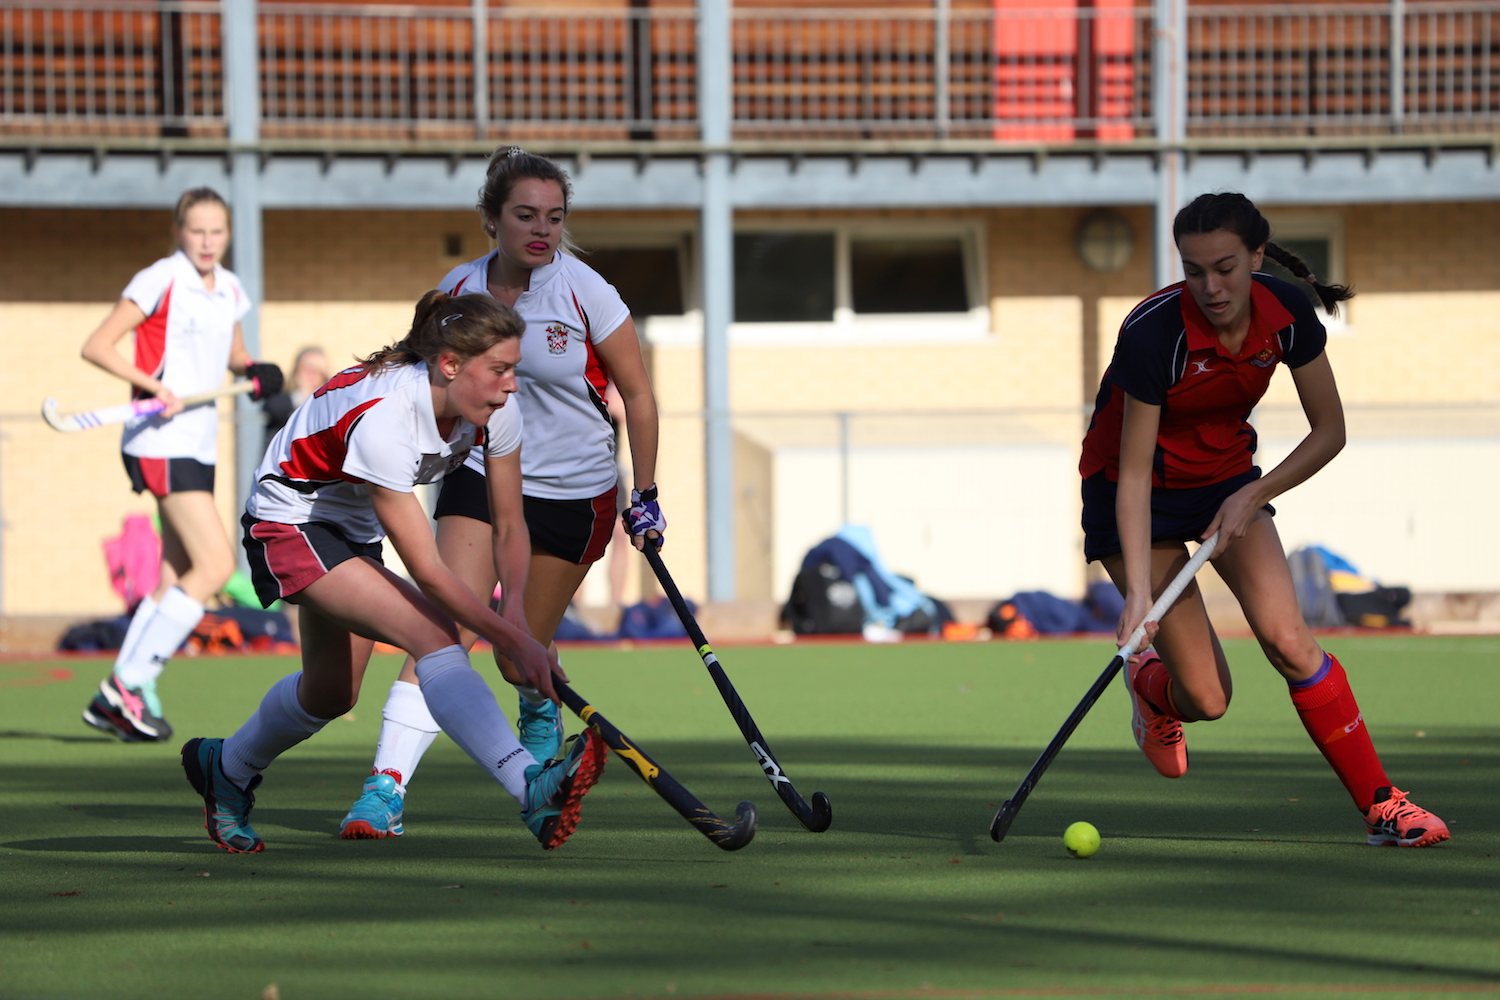 Alleyn's girls playing hockey